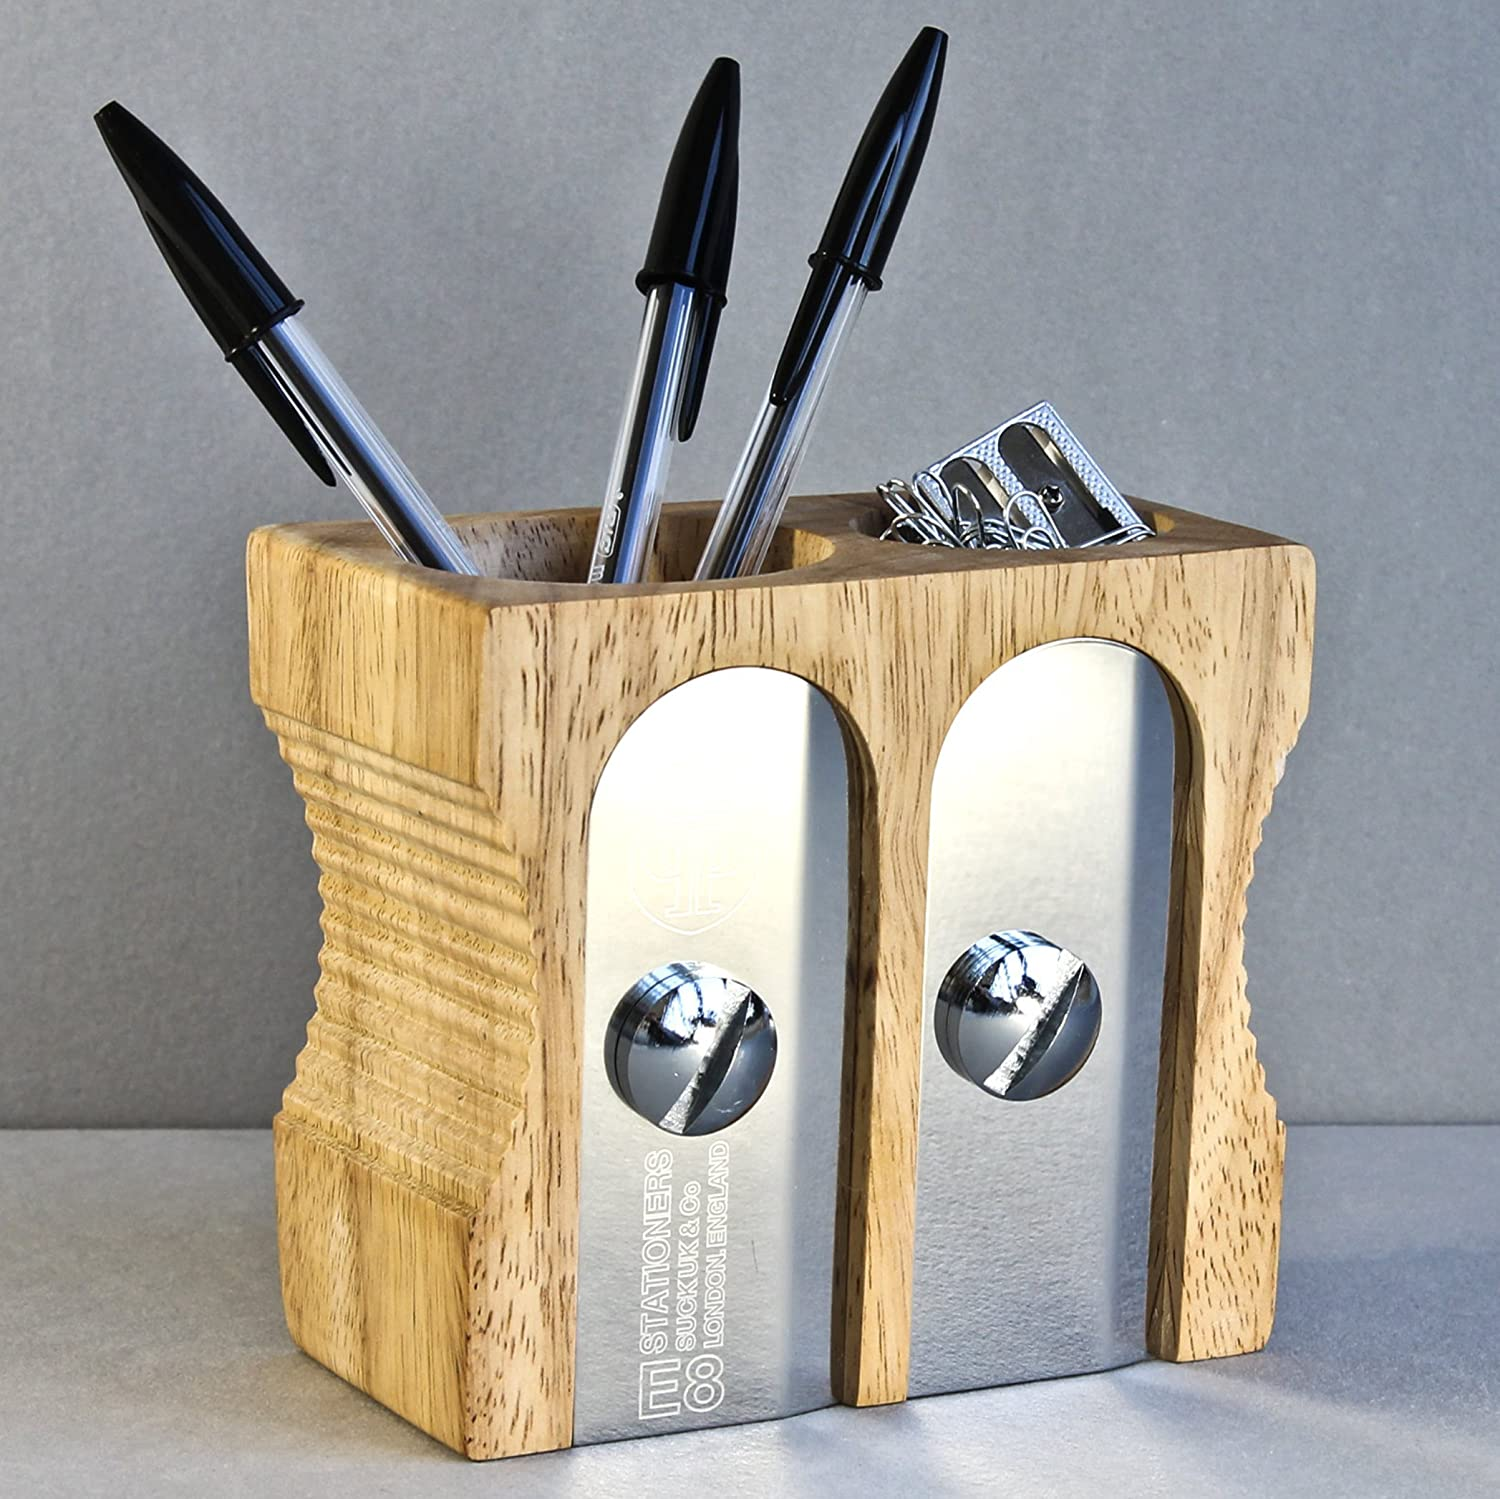 Amazon.com : SUCK UK Double Pencil Sharpener Desk Tidy - Natural : Pencil  Holders : Office Products